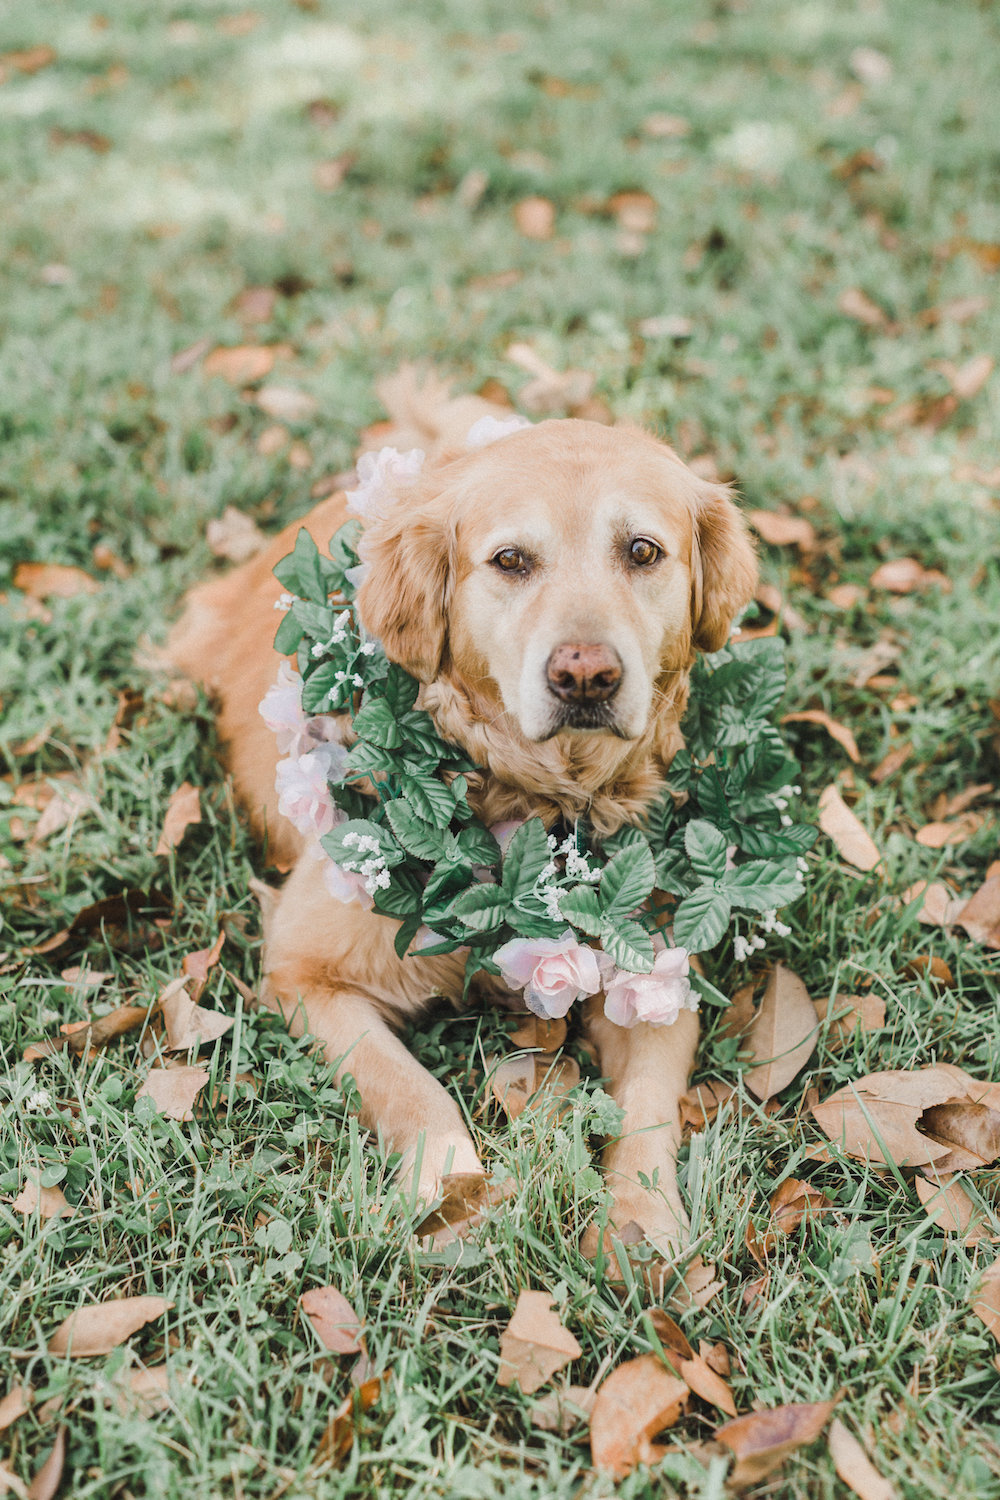 dog-ring-bearer-third-clover-paper-annamarie-akins-photography.jpg